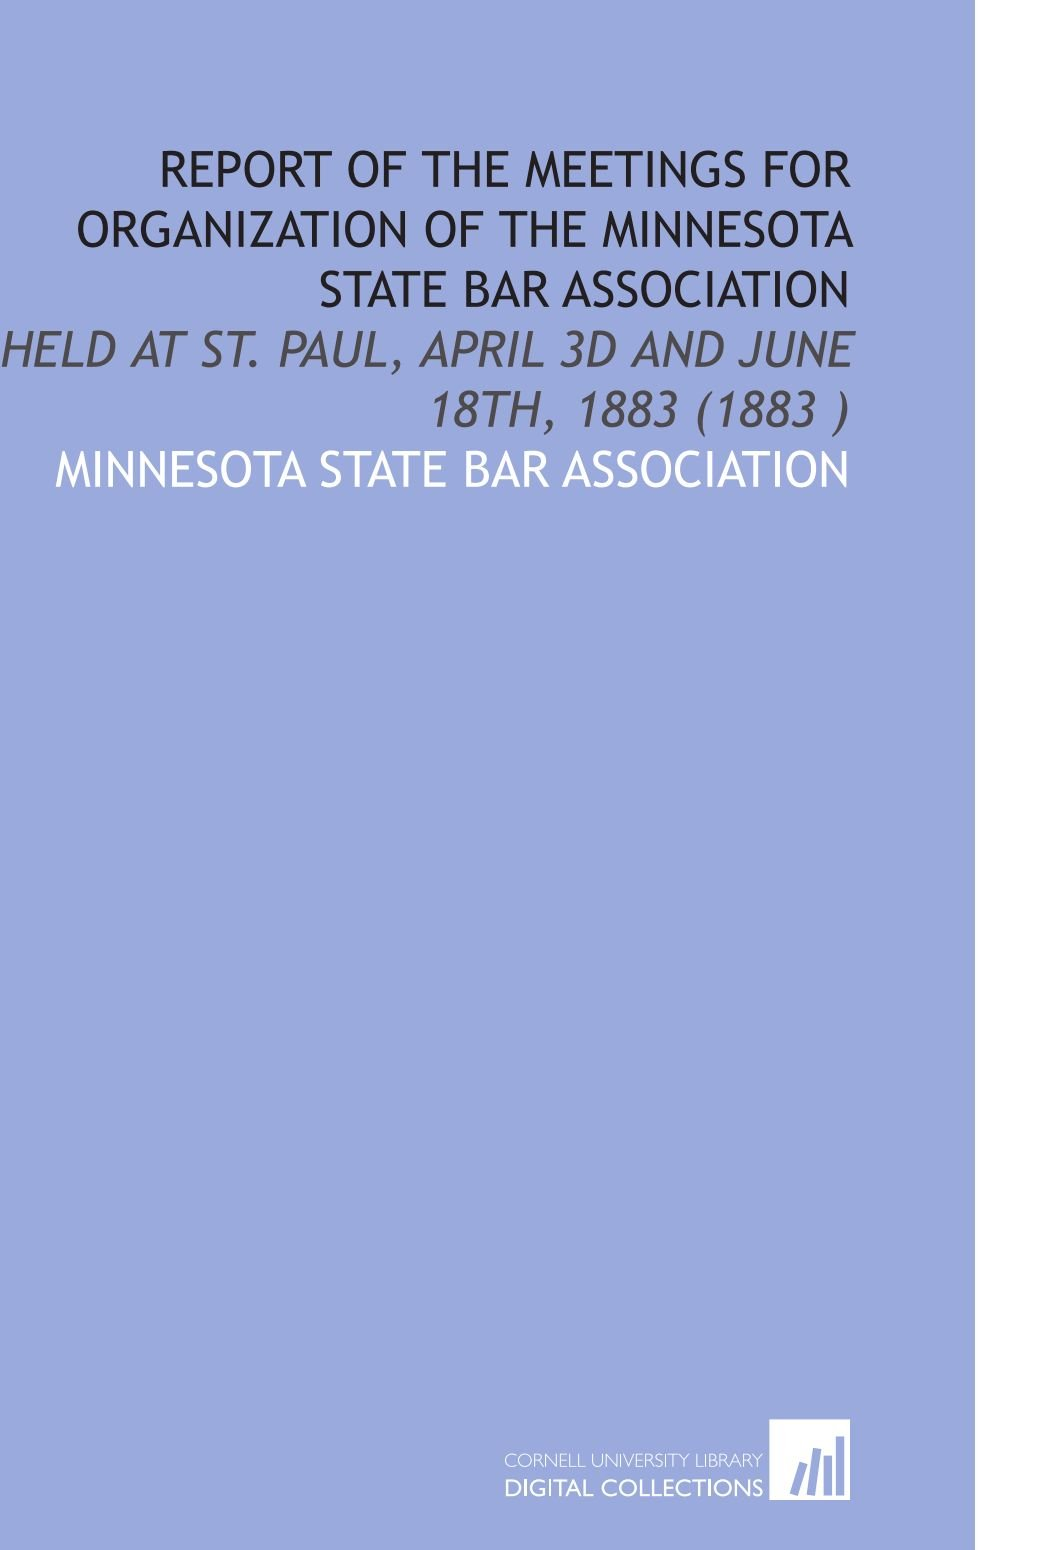 Download Report of the Meetings for Organization of the Minnesota State Bar Association: Held at St. Paul, April 3d and June 18th, 1883 (1883 ) pdf epub